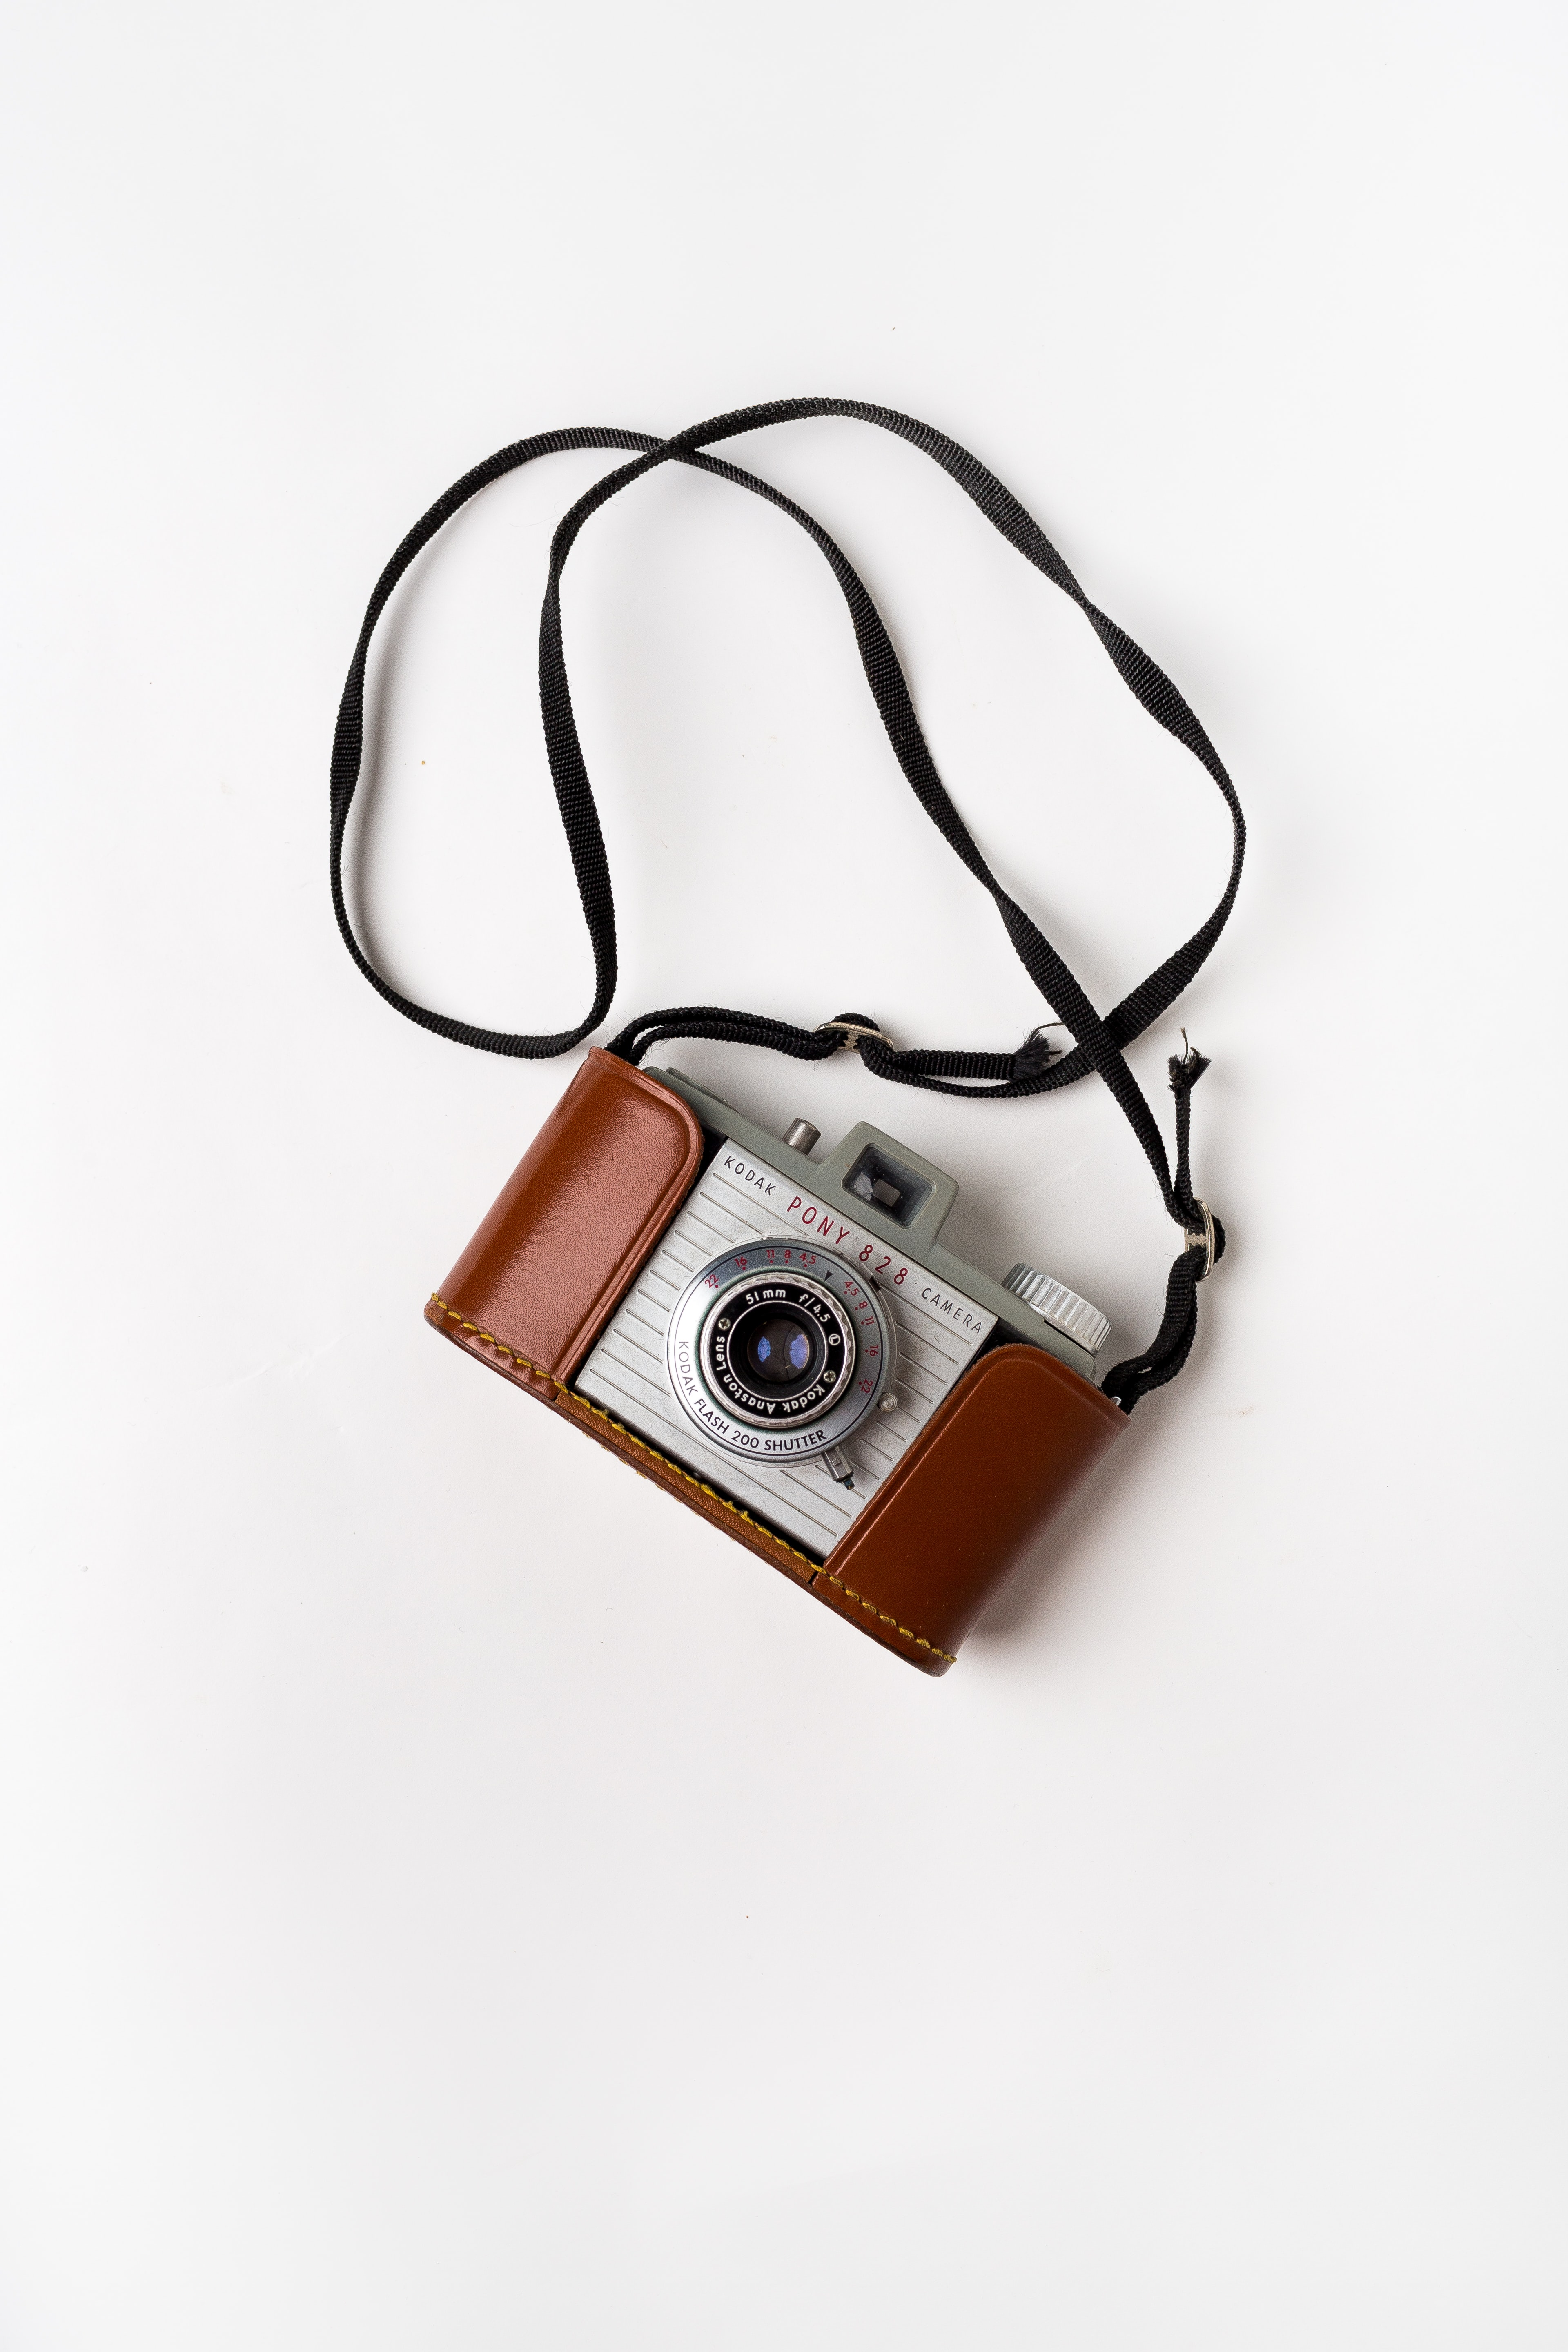 brown and gray SLR camera on white surface